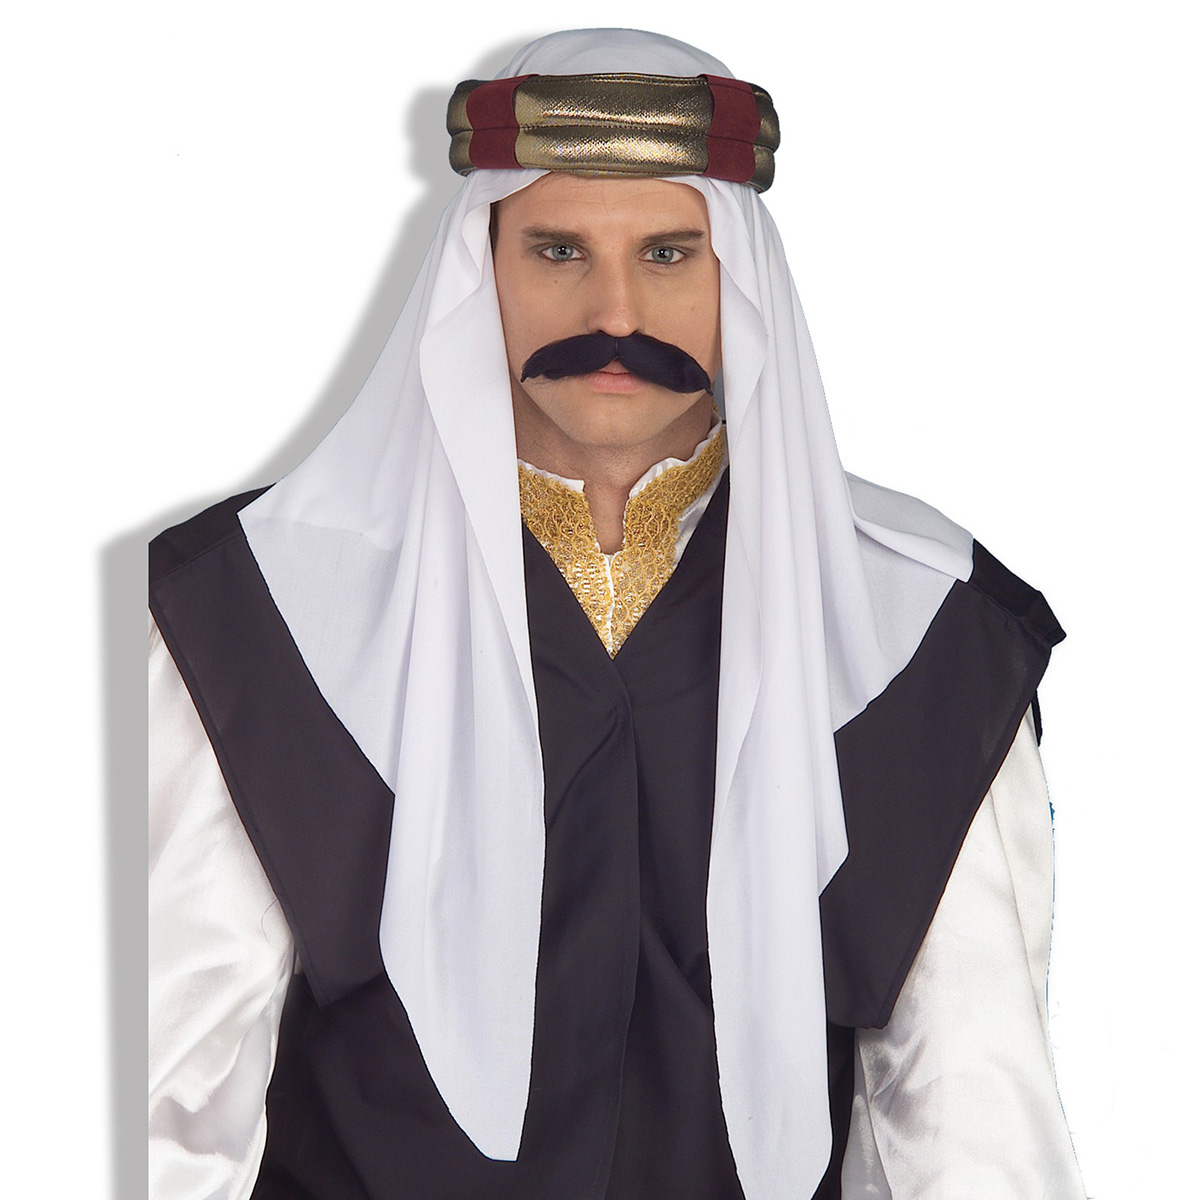 acomes: halloween gadgets toy hat fancy dress arab middle east cafe